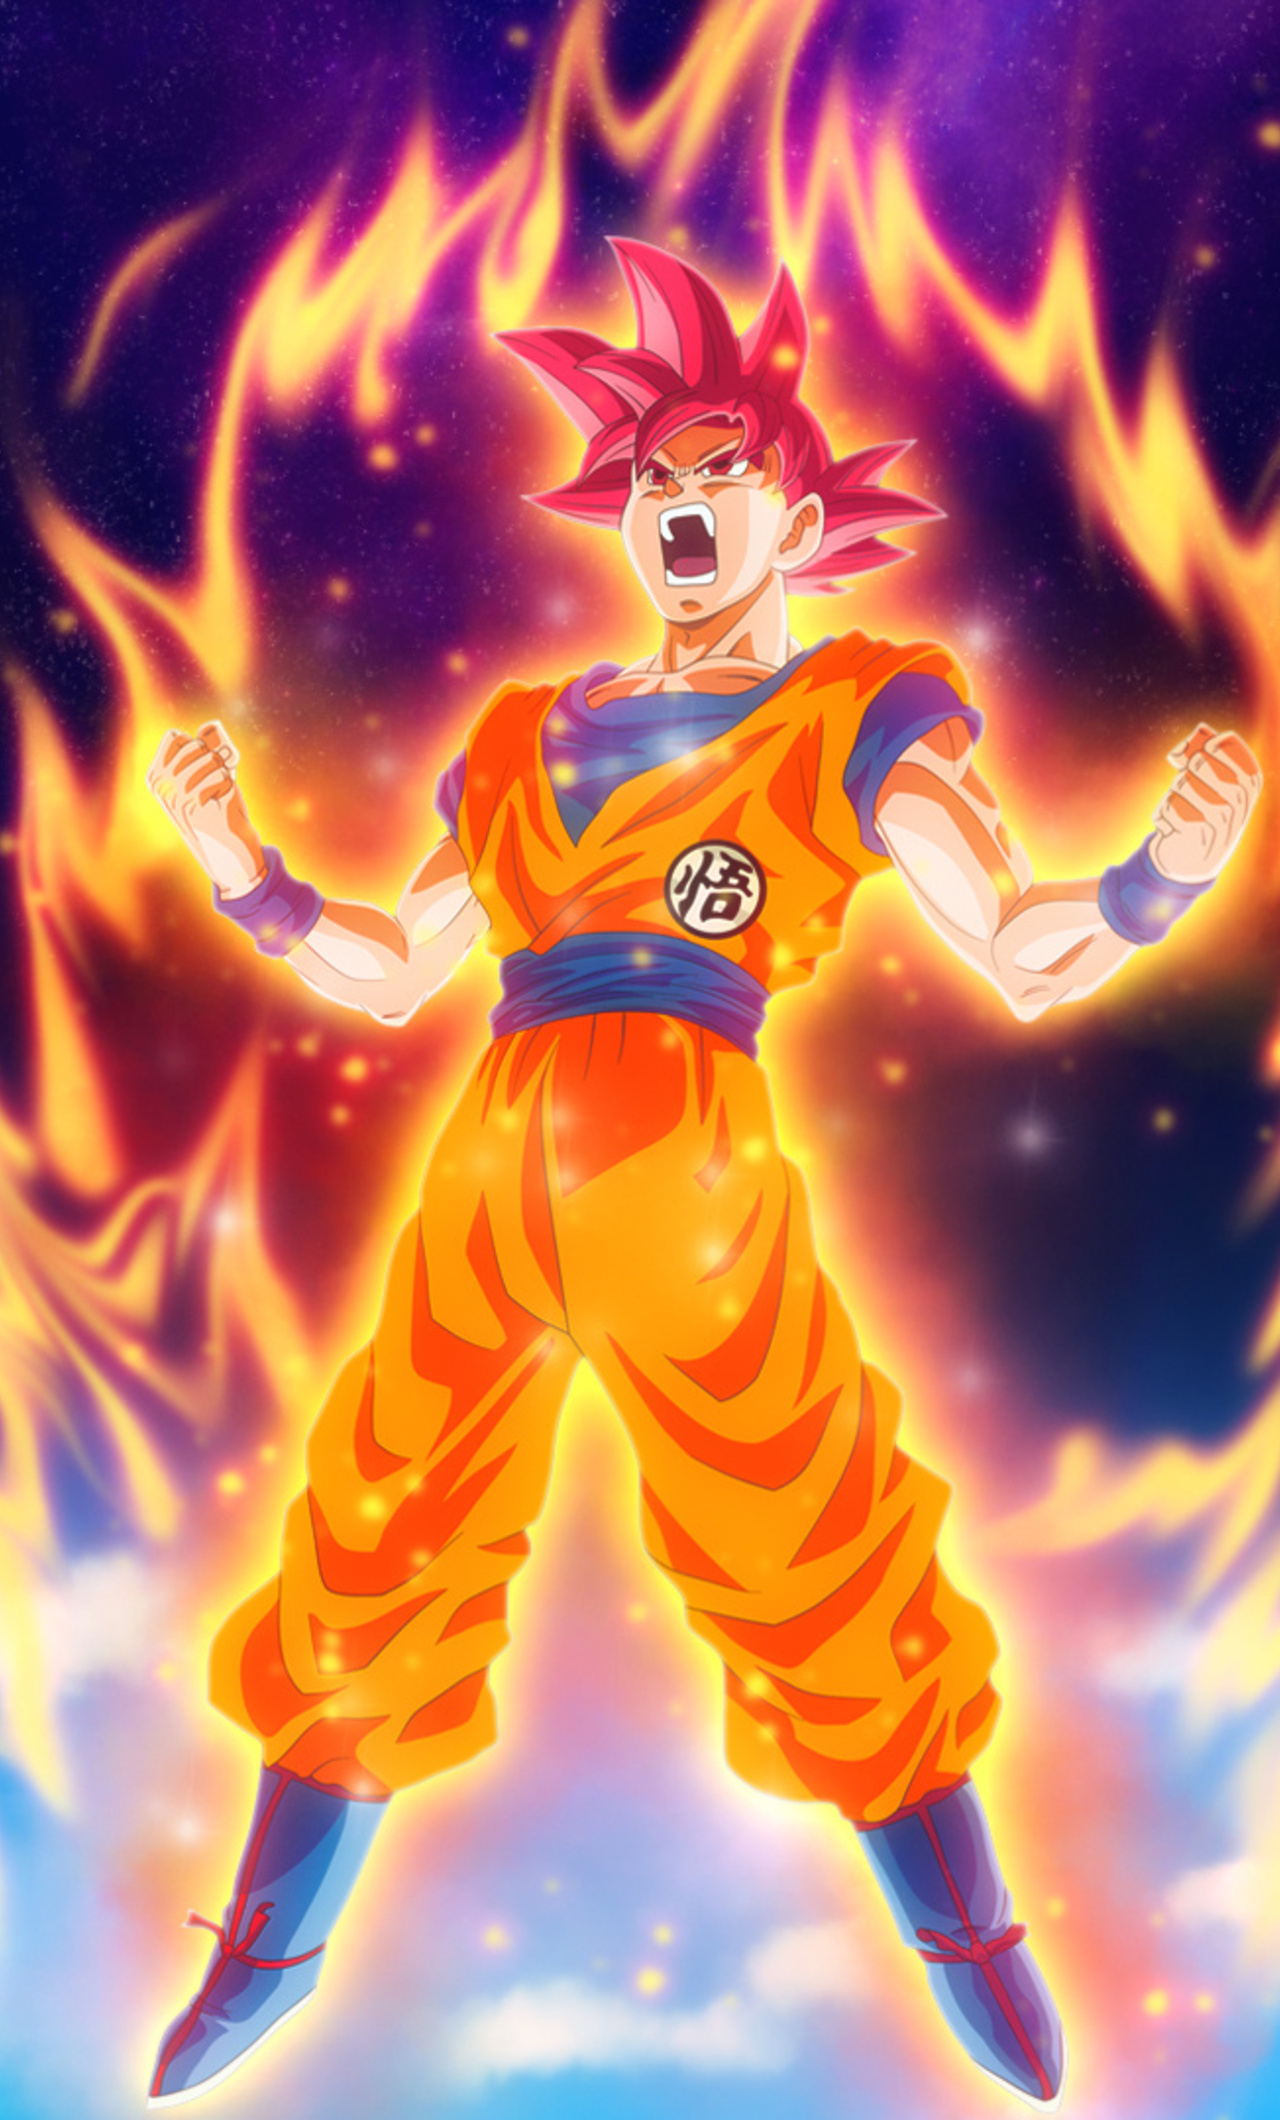 1280x2120 Dragon Ball Z Goku iPhone 6+ HD 4k Wallpapers, Images, Backgrounds, Photos and Pictures